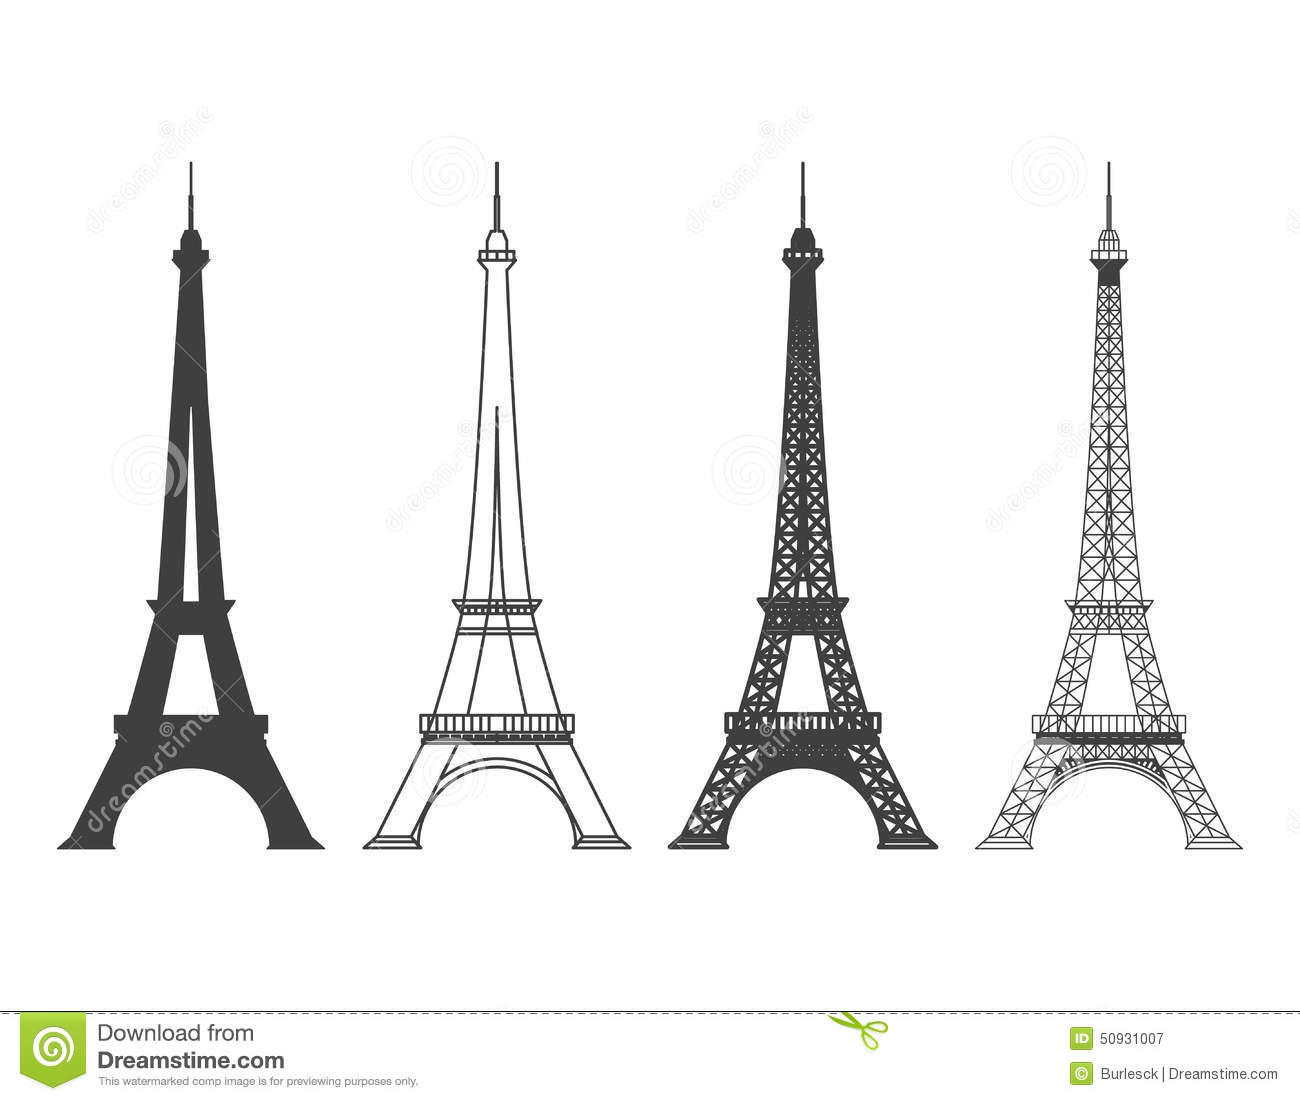 an analysis of the construction of the eiffel tower in france Four teams shortlisted for eiffel tower  analysis, replacement of the tower's  in the construction of tall structures, eiffel tower is listed as.